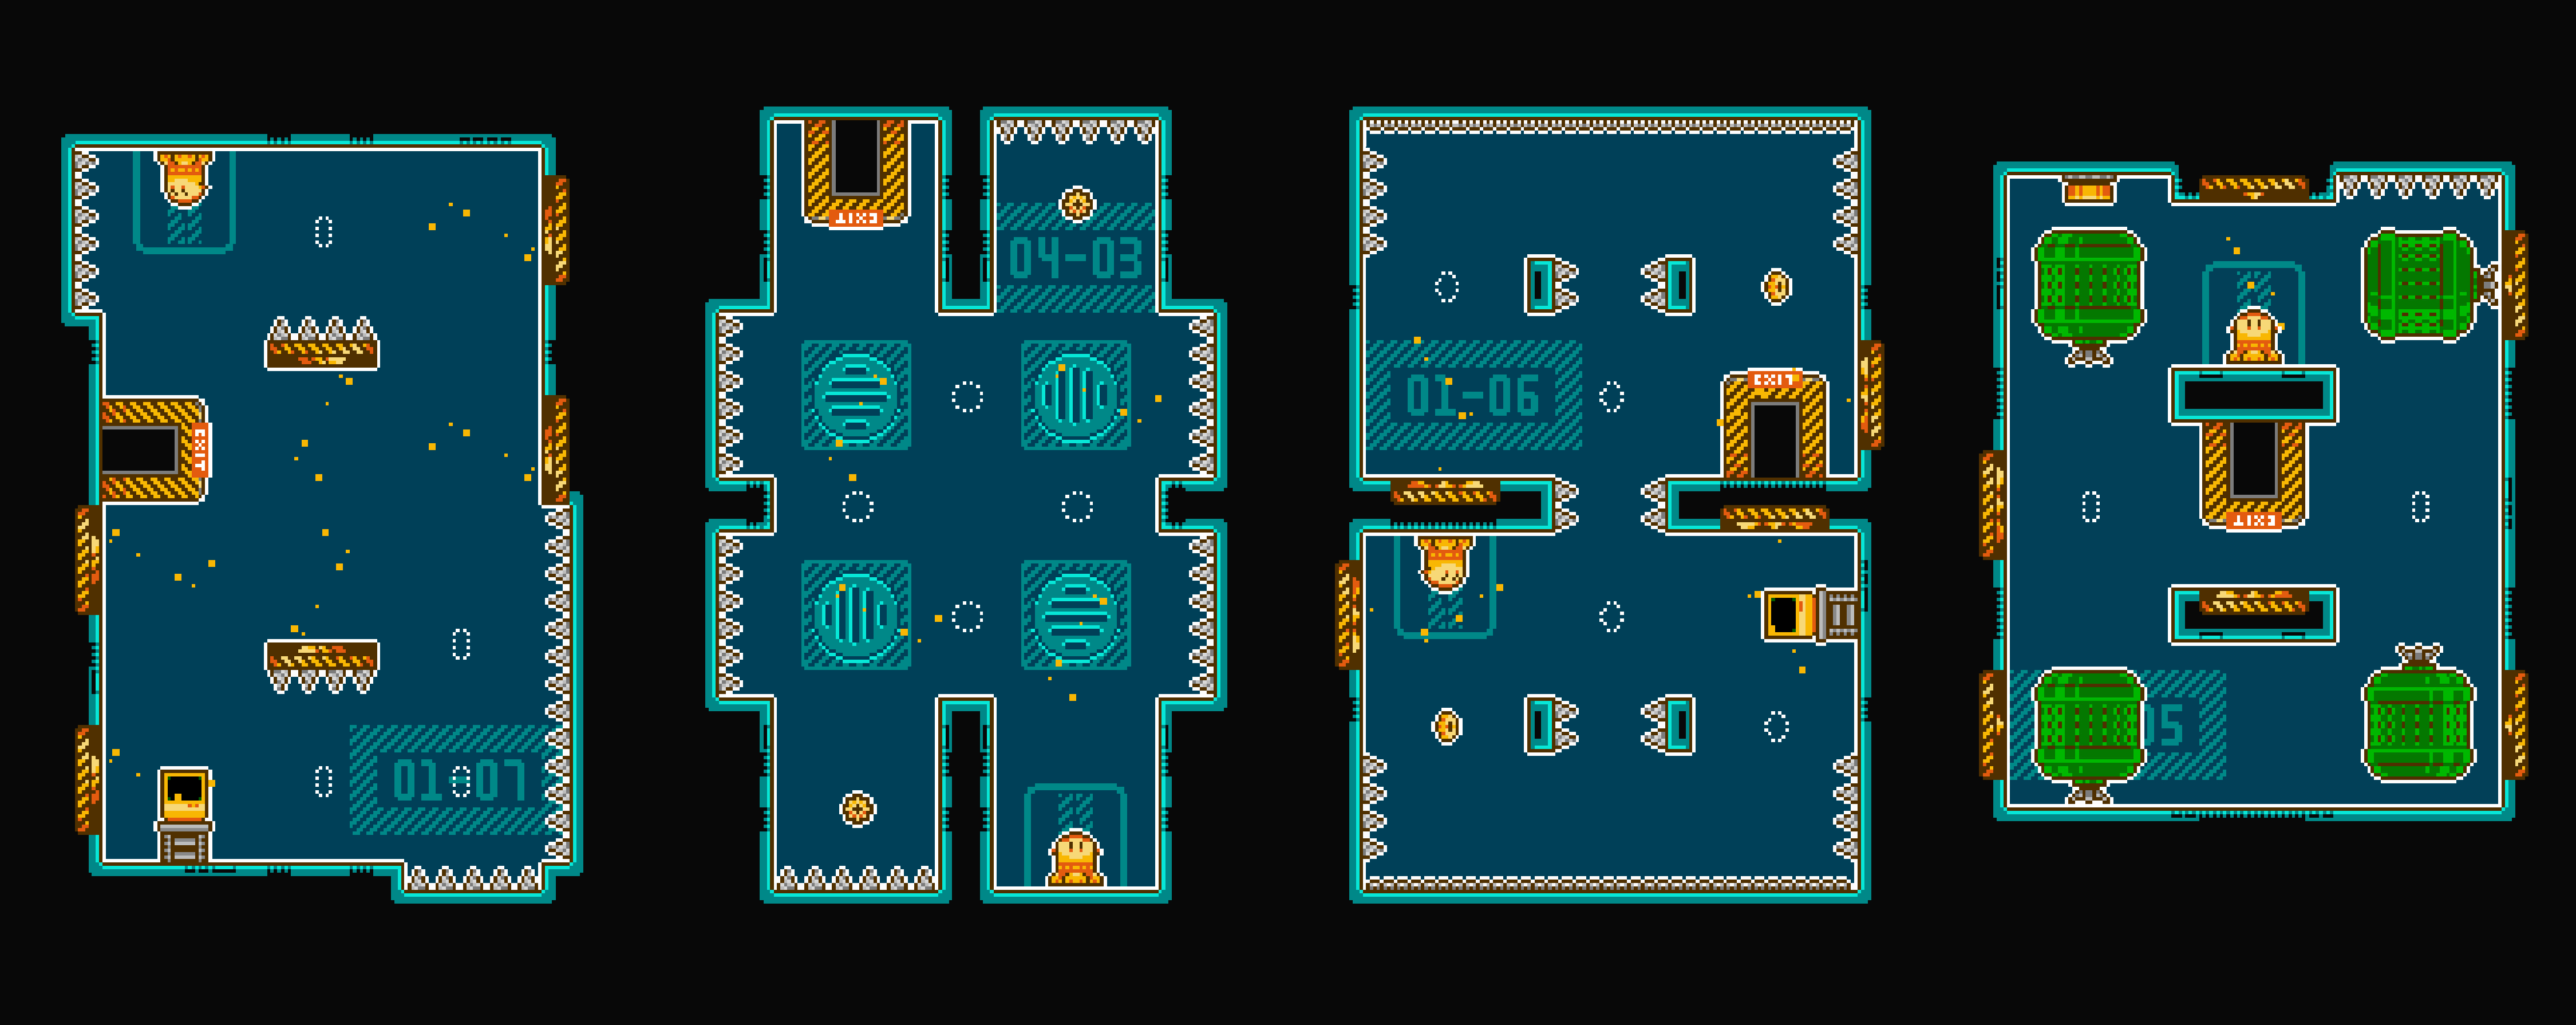 4 screens of an 8 bit style videogame for iPhone